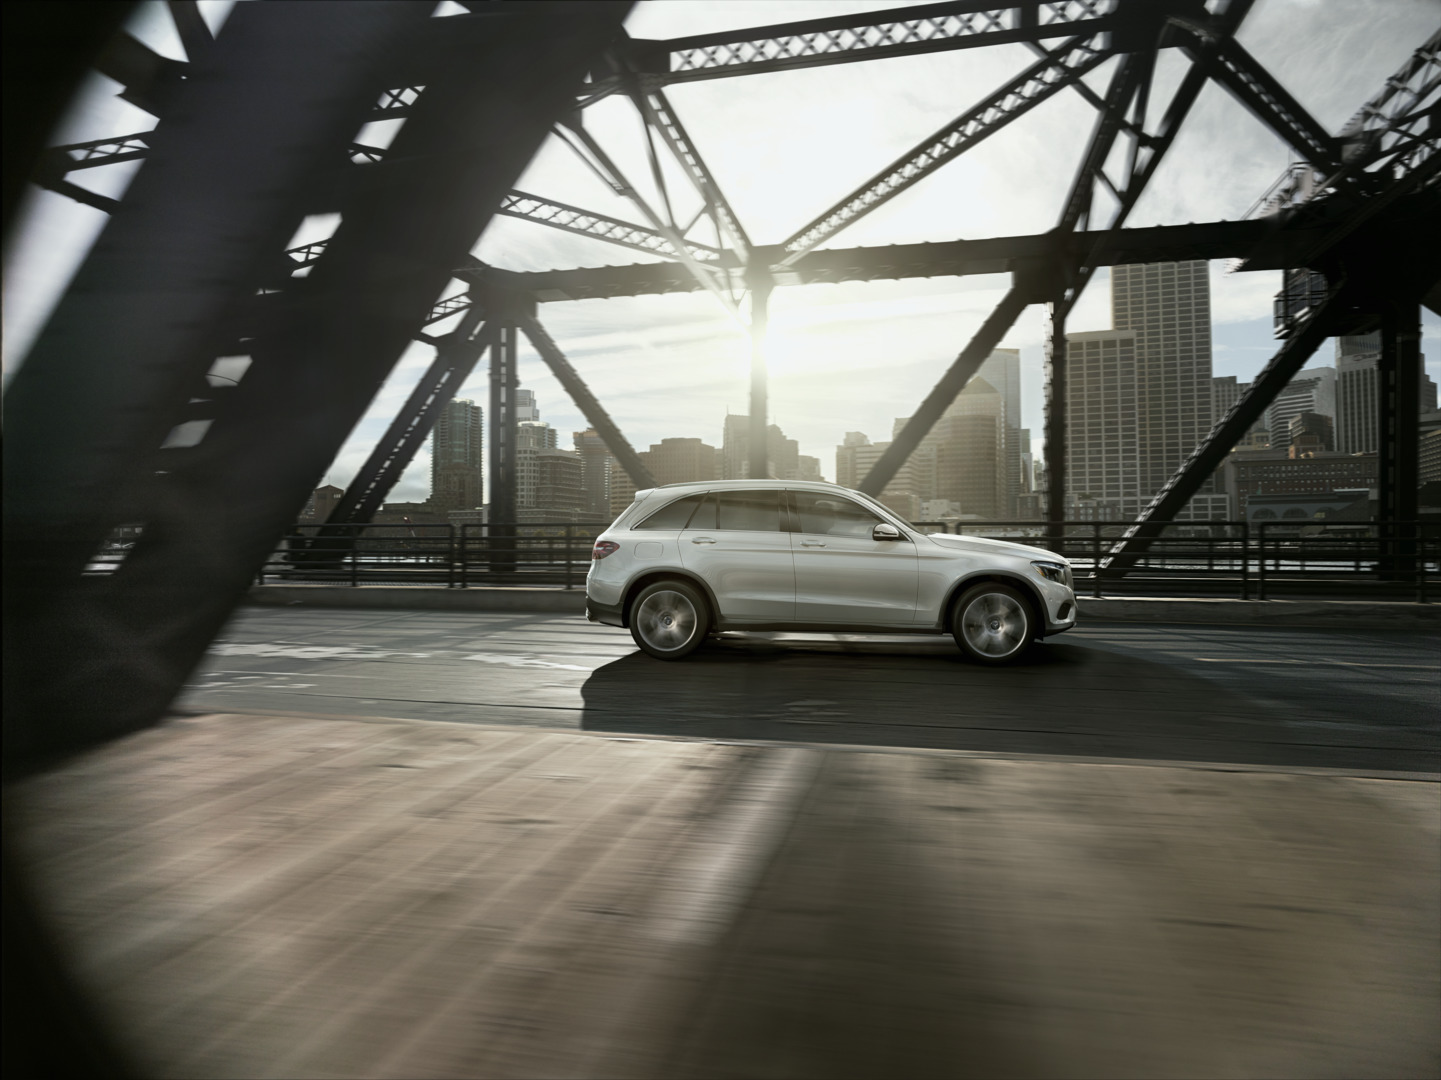 Lease a Mercedes-Benz in Sterling Heights, MI